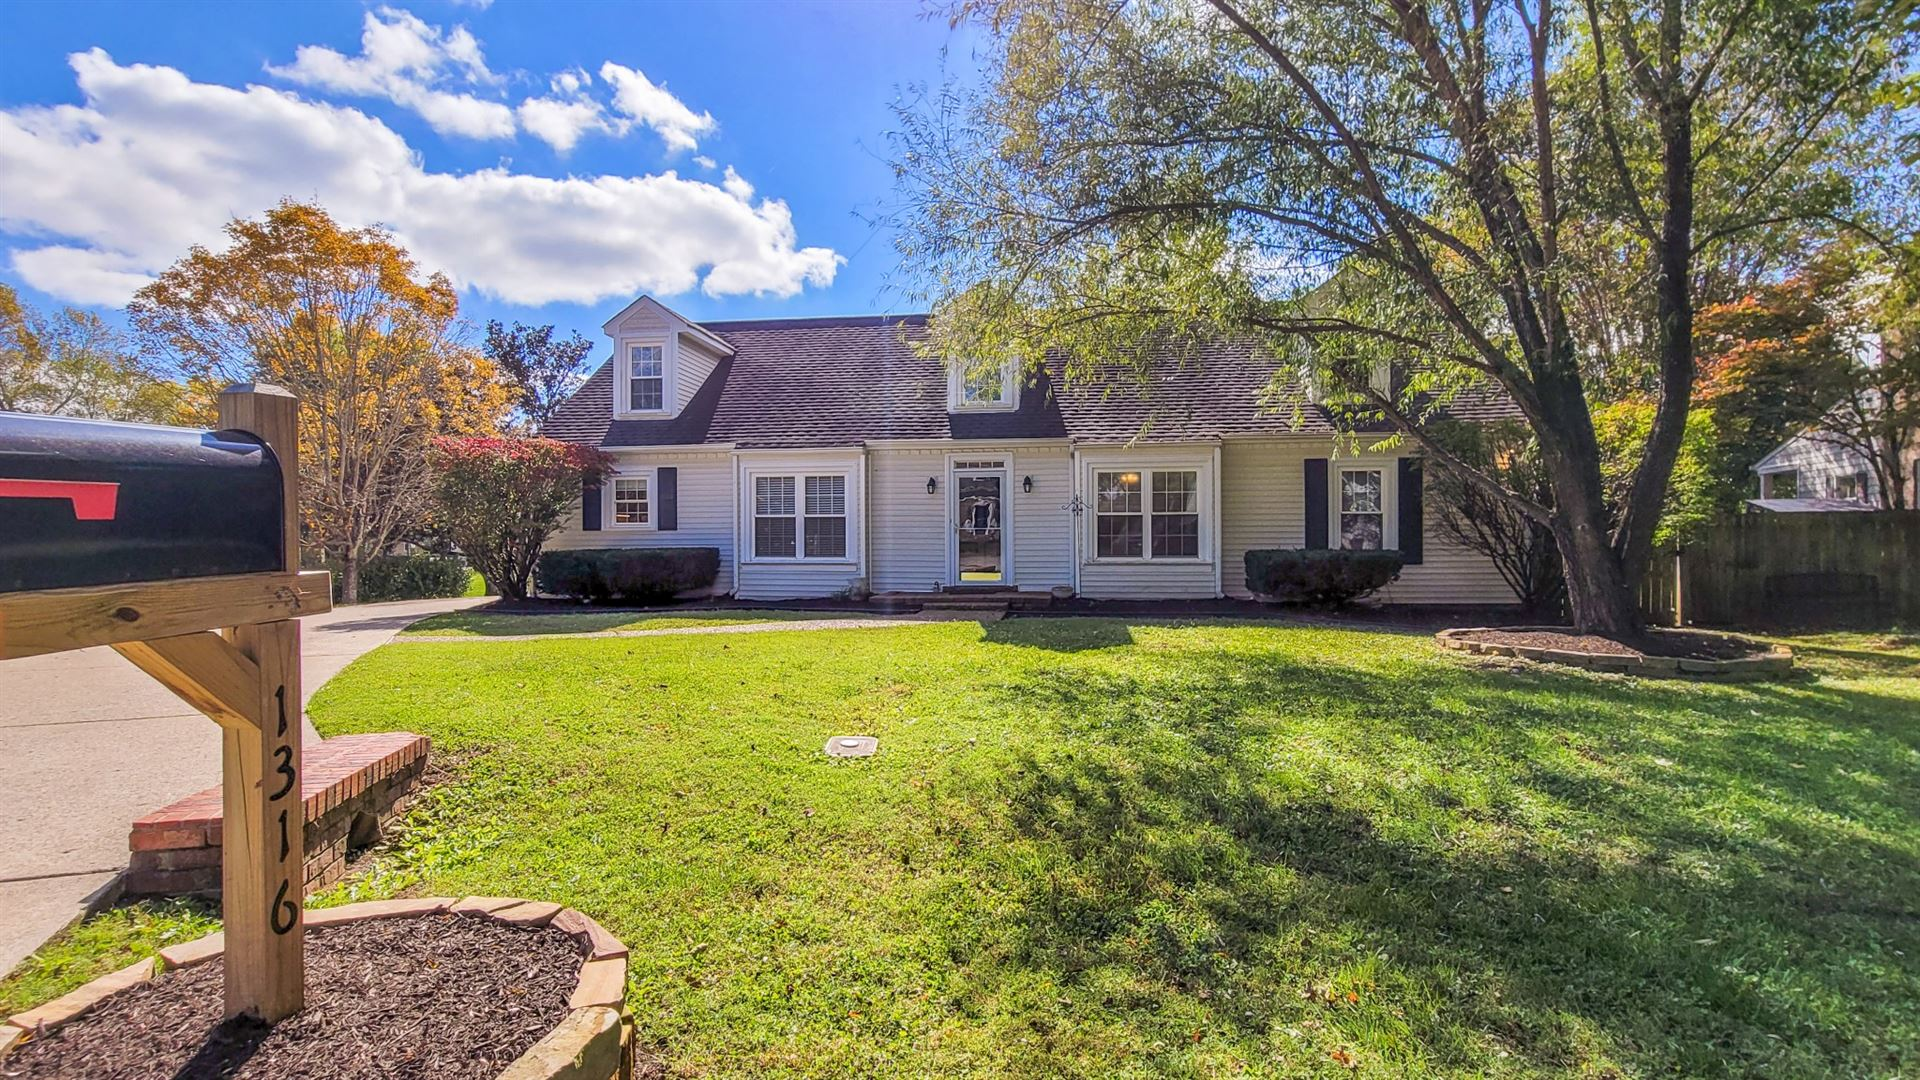 Photo of 1316 Glade Dr, Franklin, TN 37069 (MLS # 2303285)